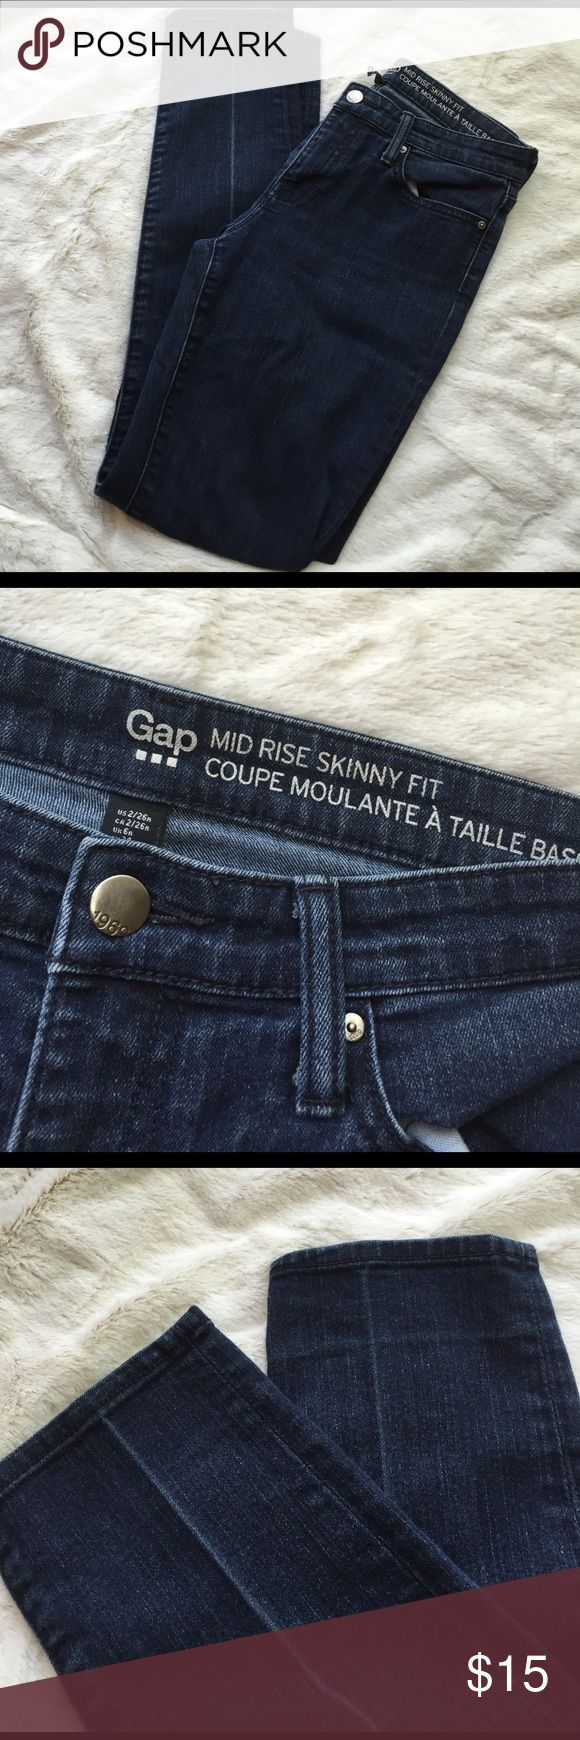 """1969 Gap Mid Rise Skinny Fit Jeans New gap mid rise skinny jeans. Perfect conditions no fraying on bottoms or pockets. Zipper works. Dark wash. Size 2 /26. 28.5"""" inseam GAP Jeans Skinny"""